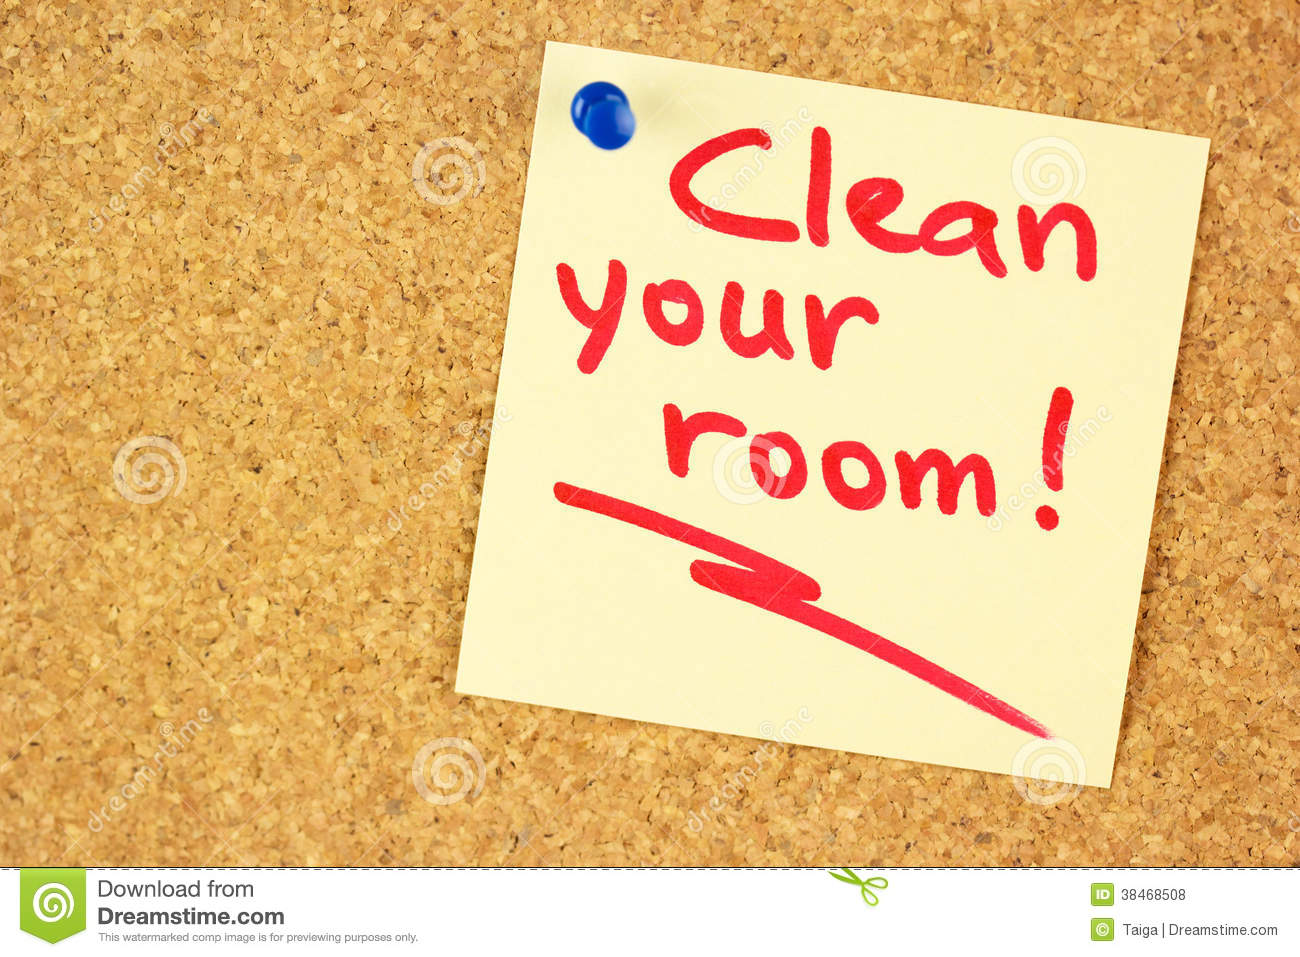 Clean Your Room Clipart - Clipart Kid